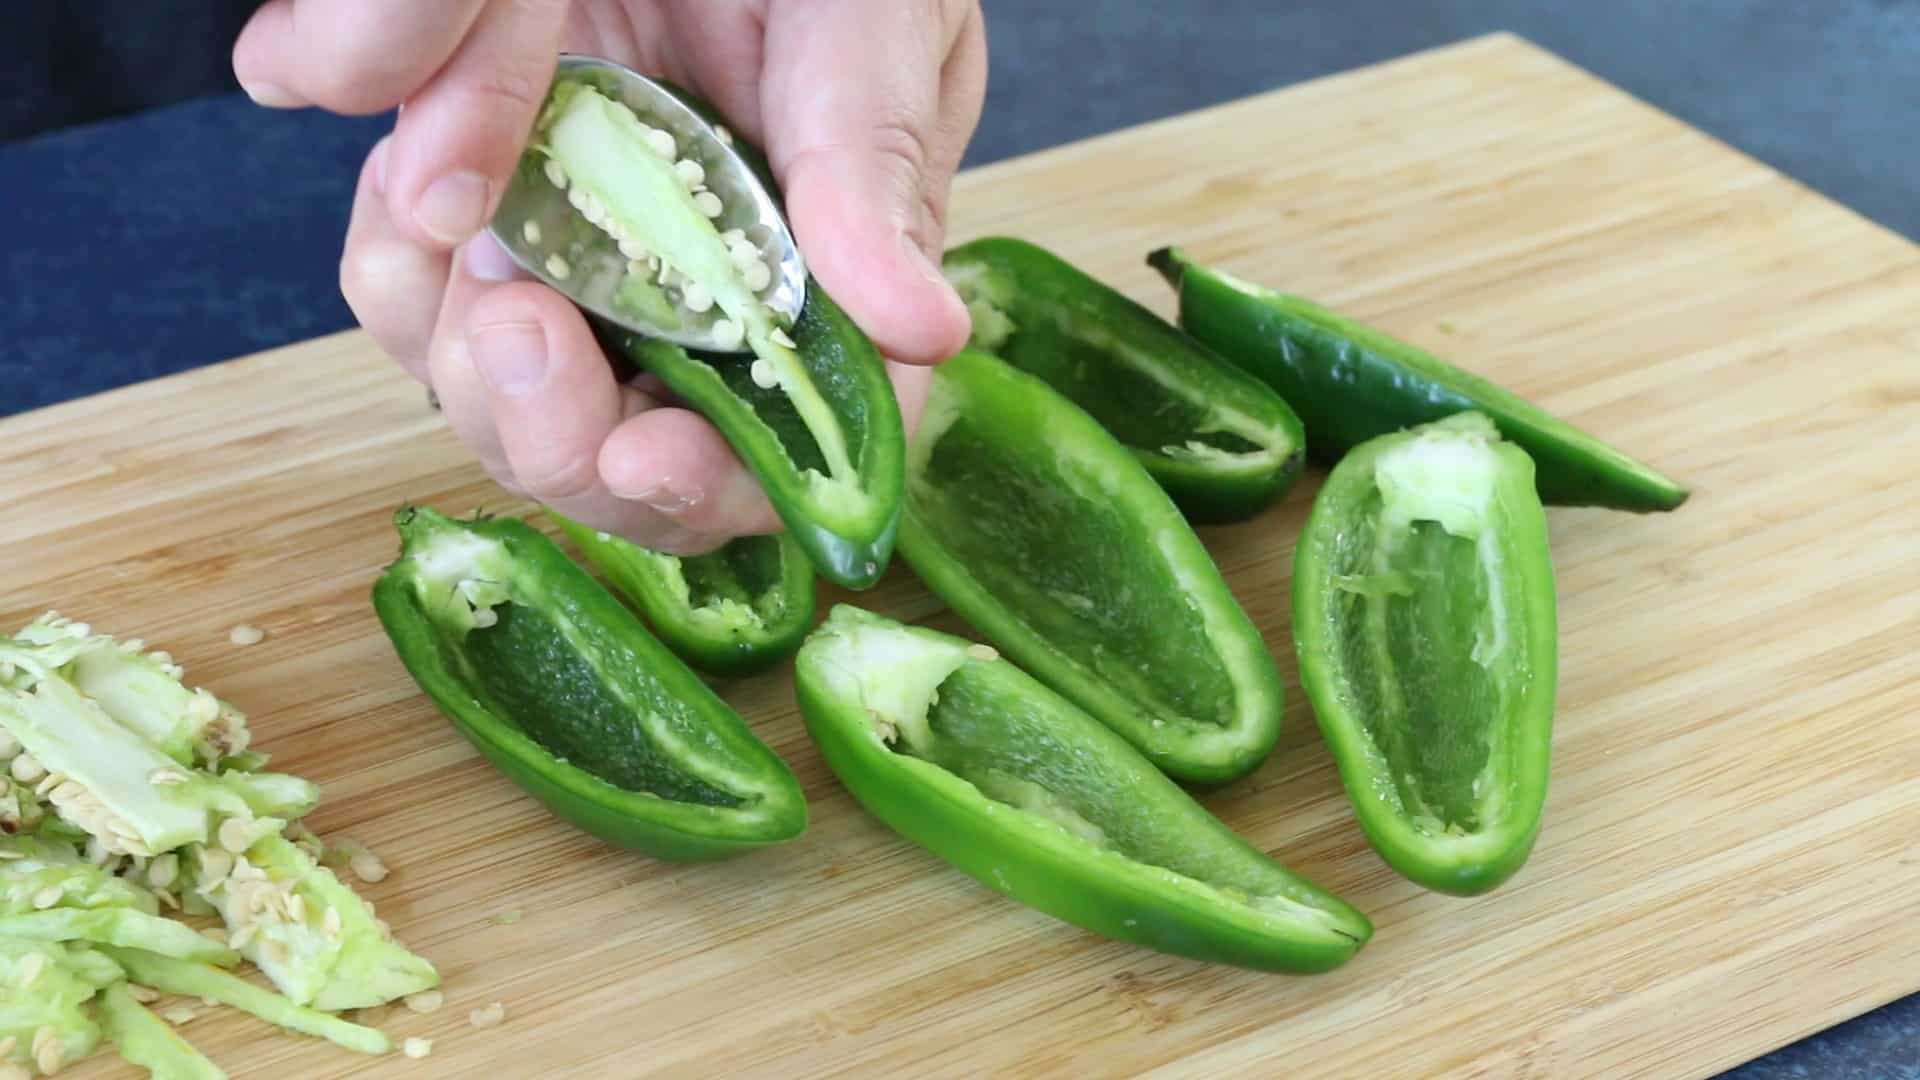 Coring Jalapeno Peppers for our Cream Cheese Jalapeno Poppers